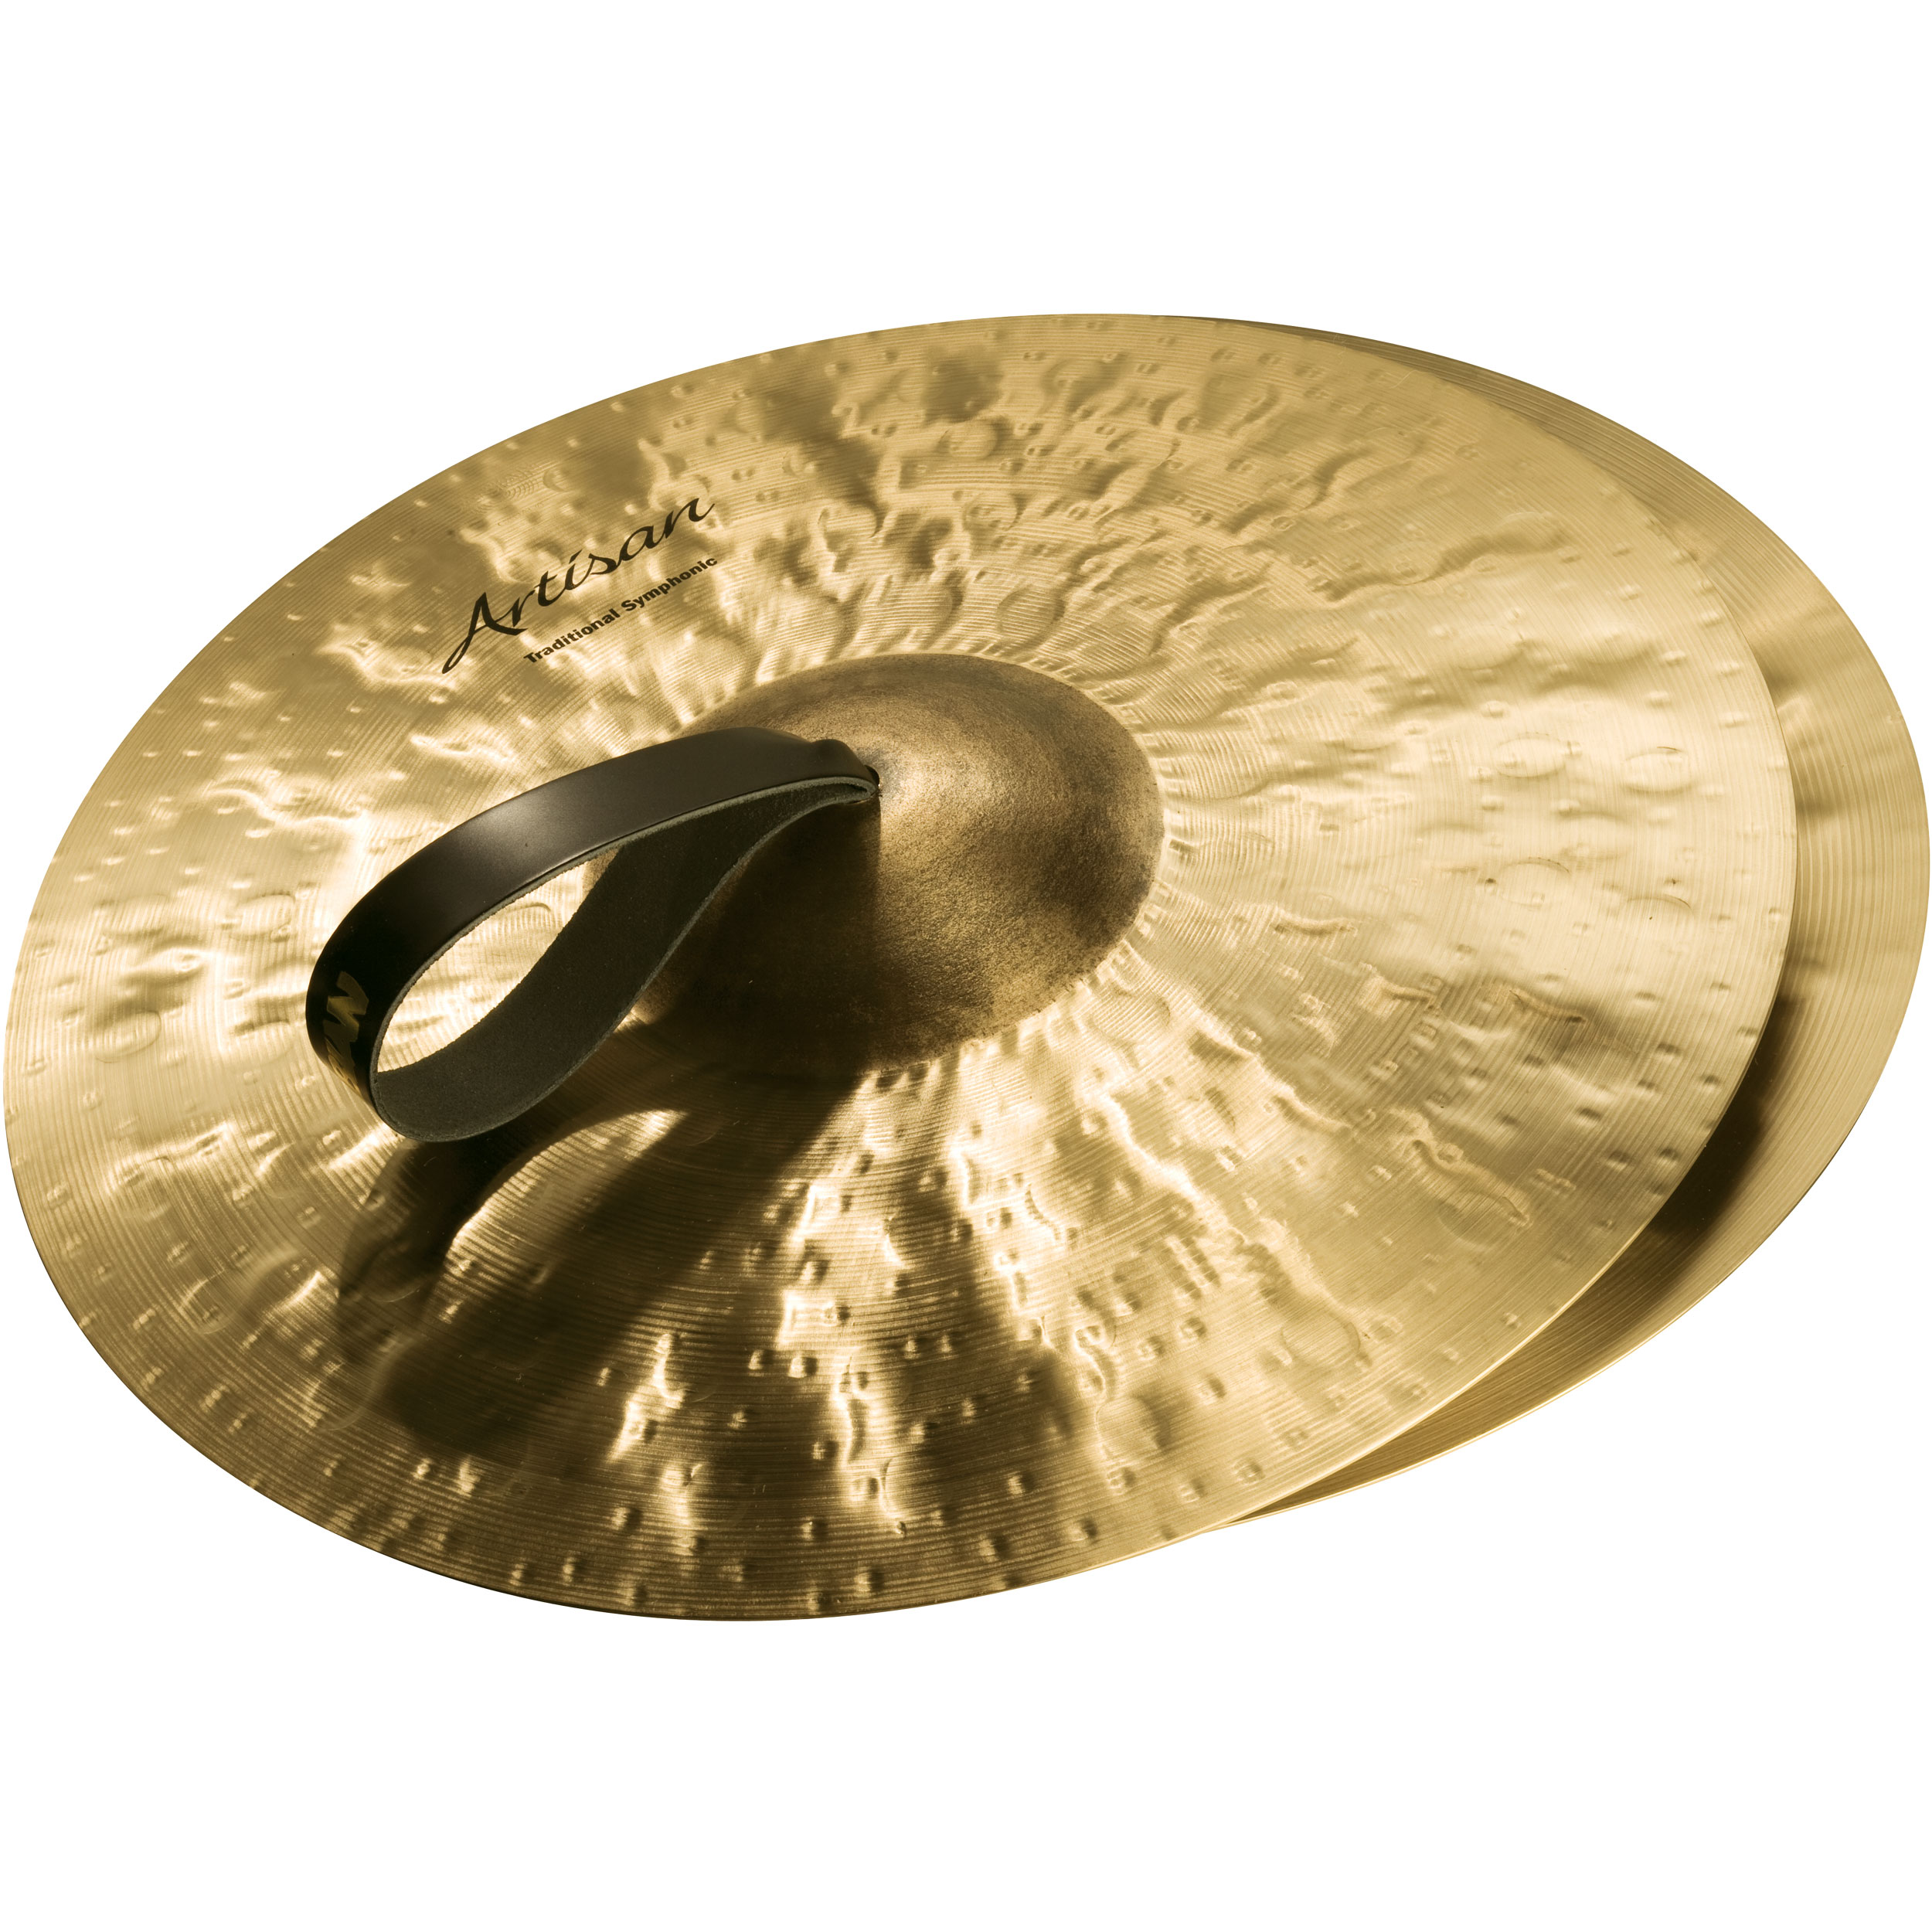 "Sabian 16"" Artisan Traditional Symphonic Medium-Heavy Crash Cymbal Pair"